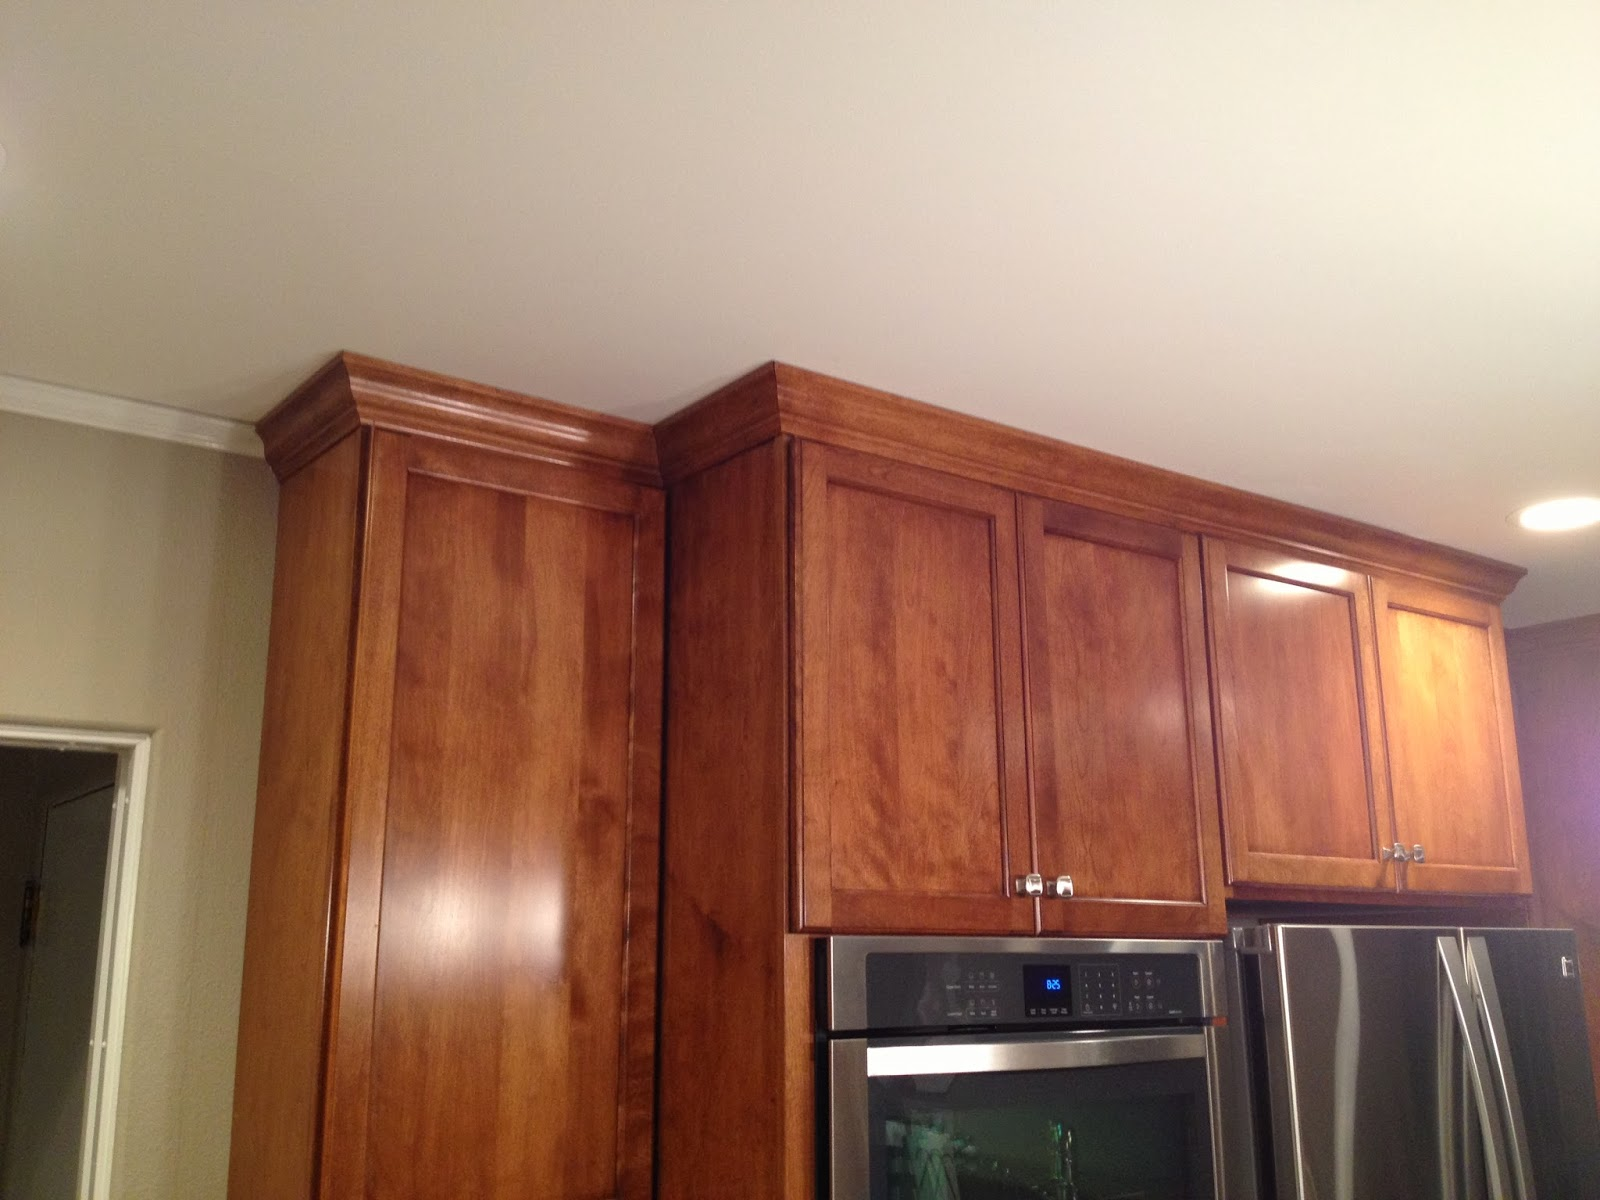 Life of the lorenzens kitchen crown moulding - Crown moulding kitchen cabinets ...